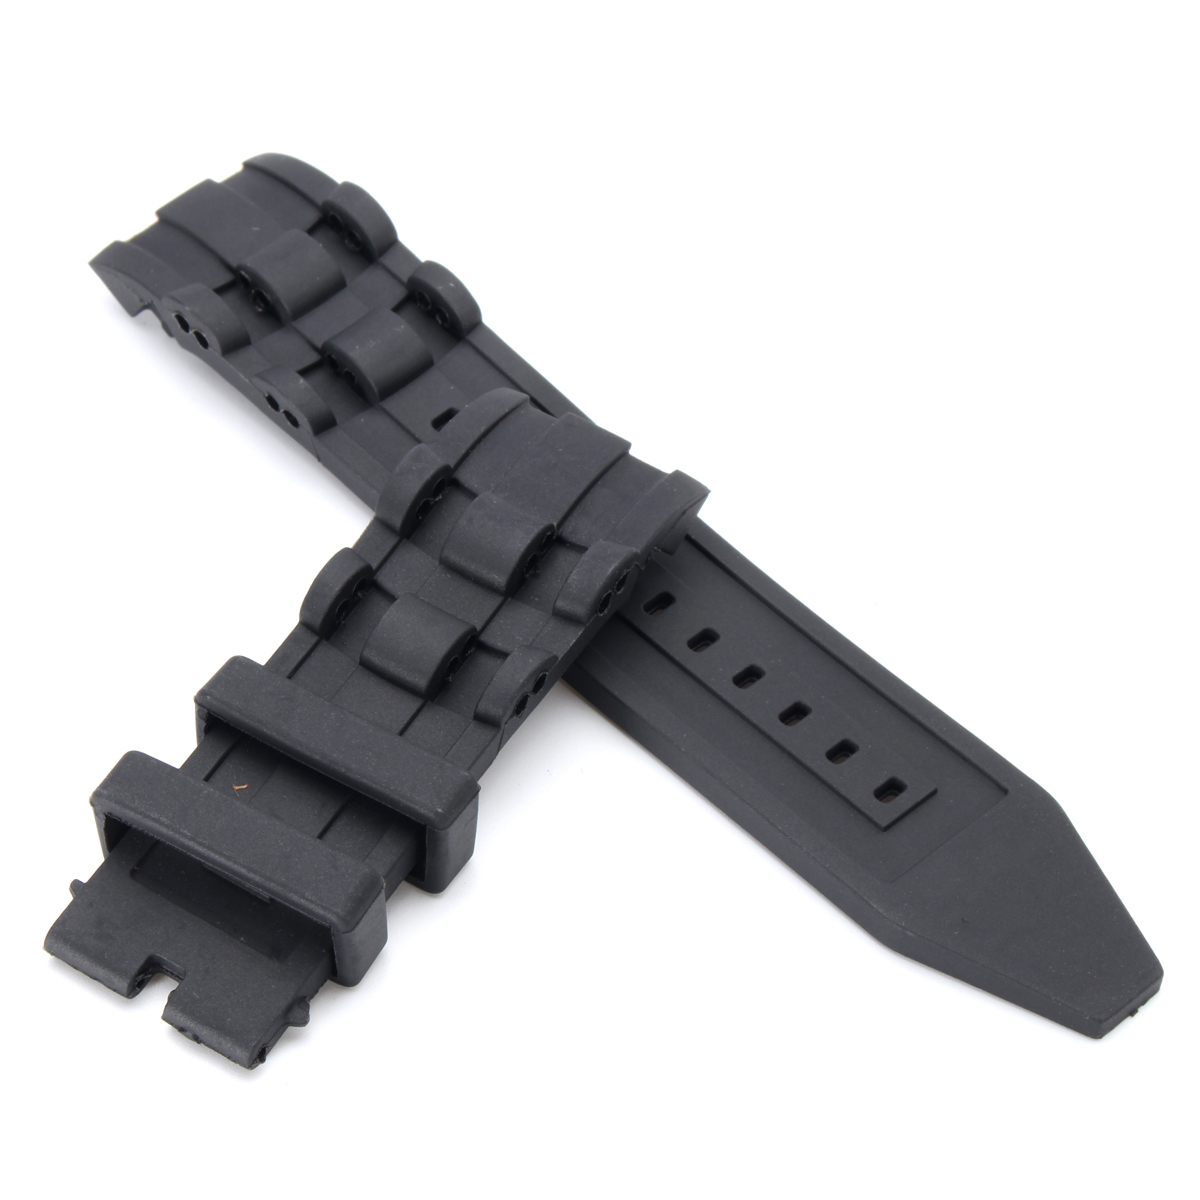 26mm Rubber Black Watch Band Strap For Invicta Pro Dive